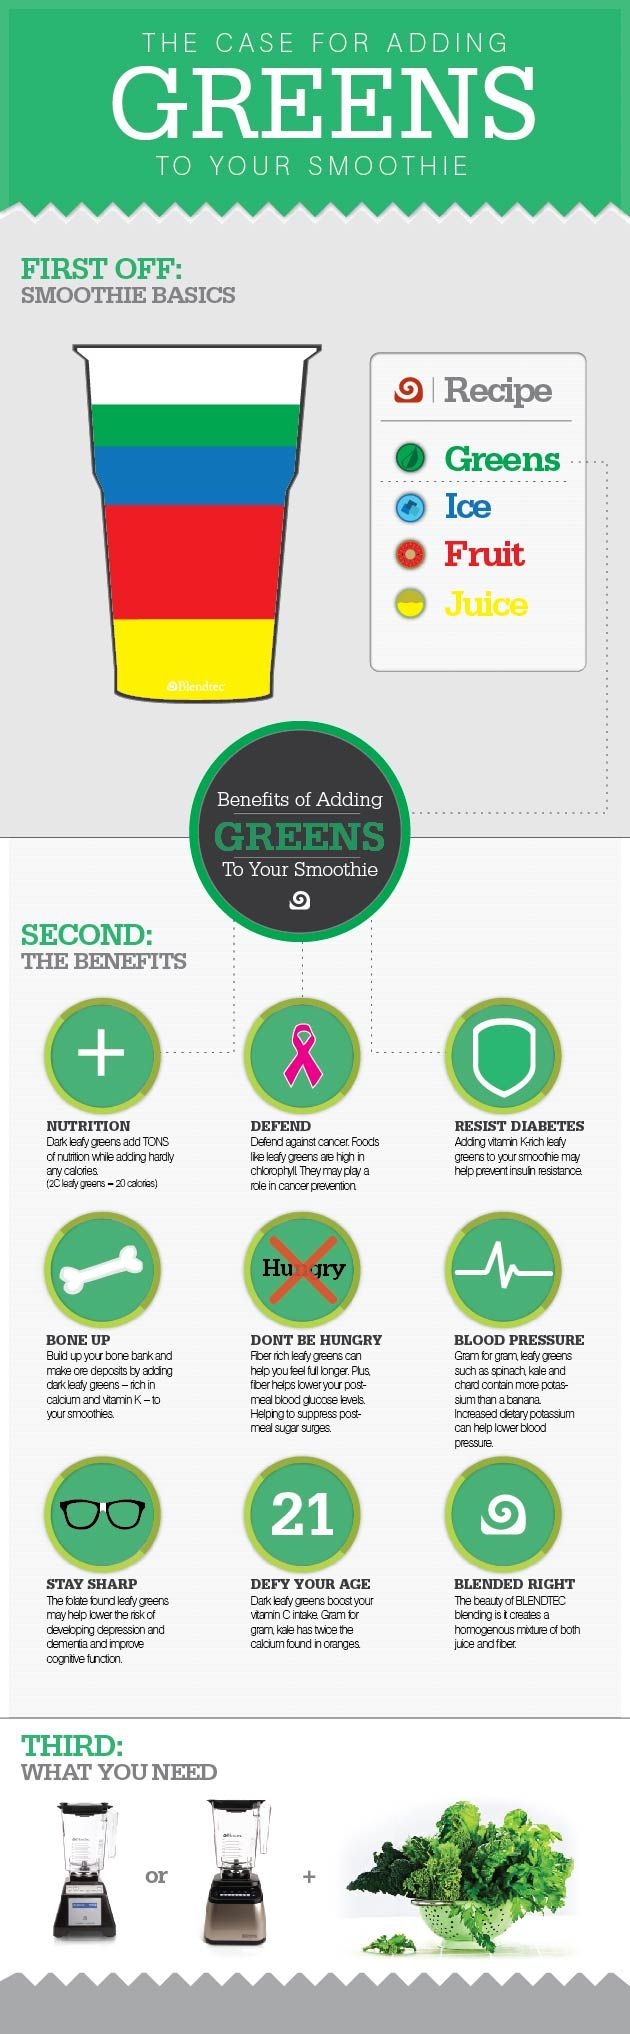 Green smoothie benefits chart -- also, a good sounding recipe..   a cup of coconut water (chilled)  about half a blender of kale or kale and spinach  a handful of frozen pineapple chunks  a handful of frozen mango chunks  a dash of cayanne